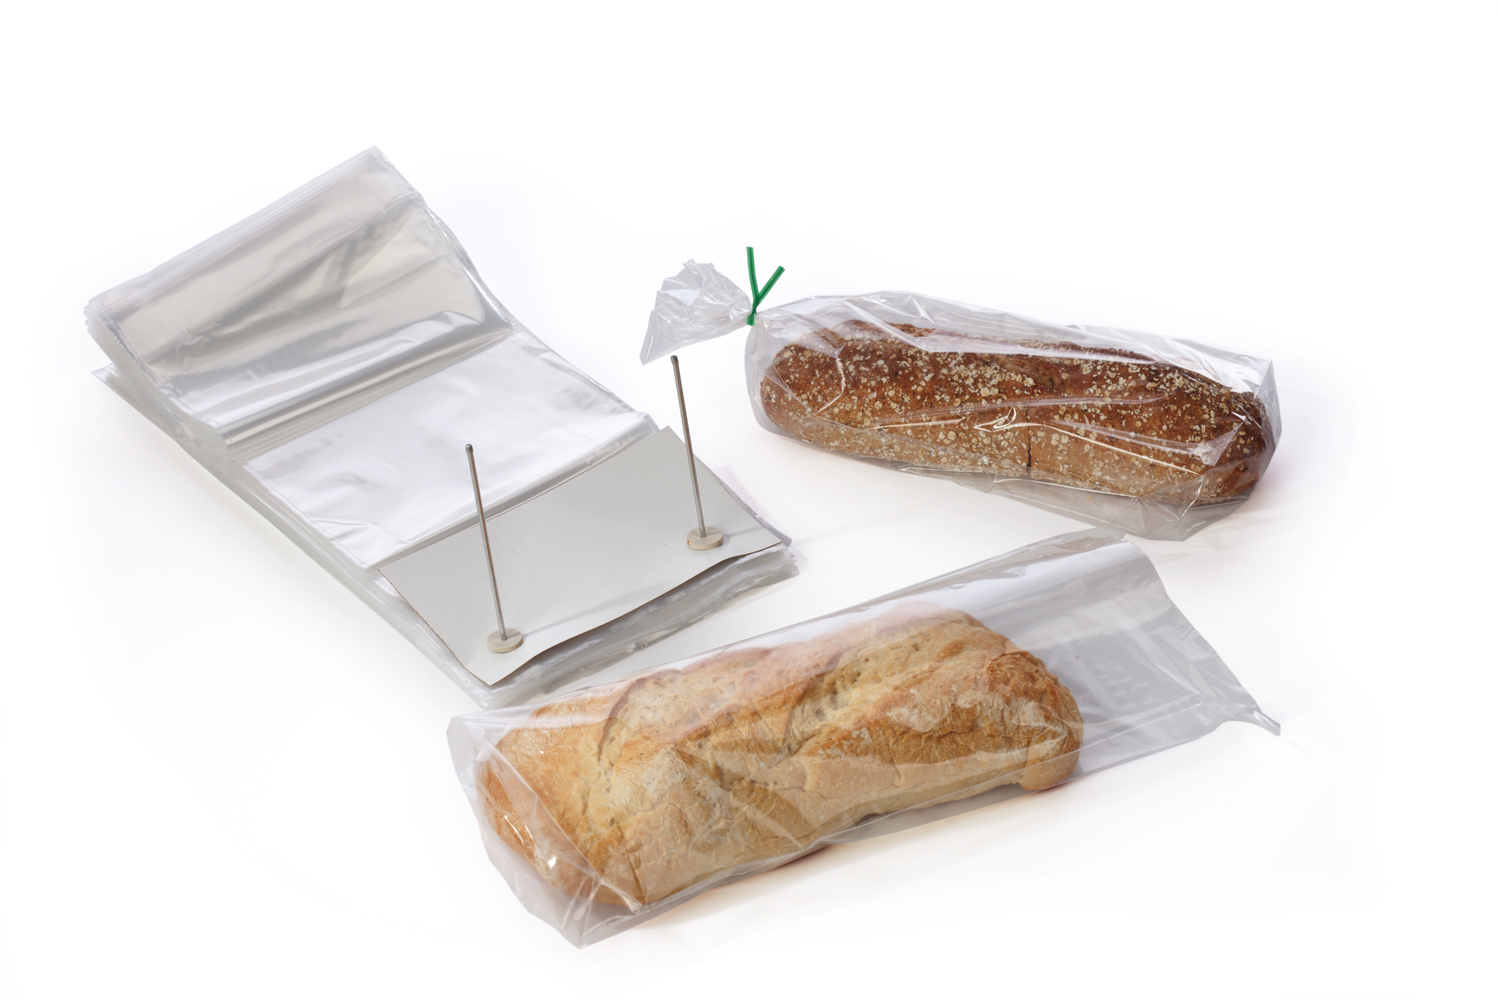 About Sandwich & Silverware Bags